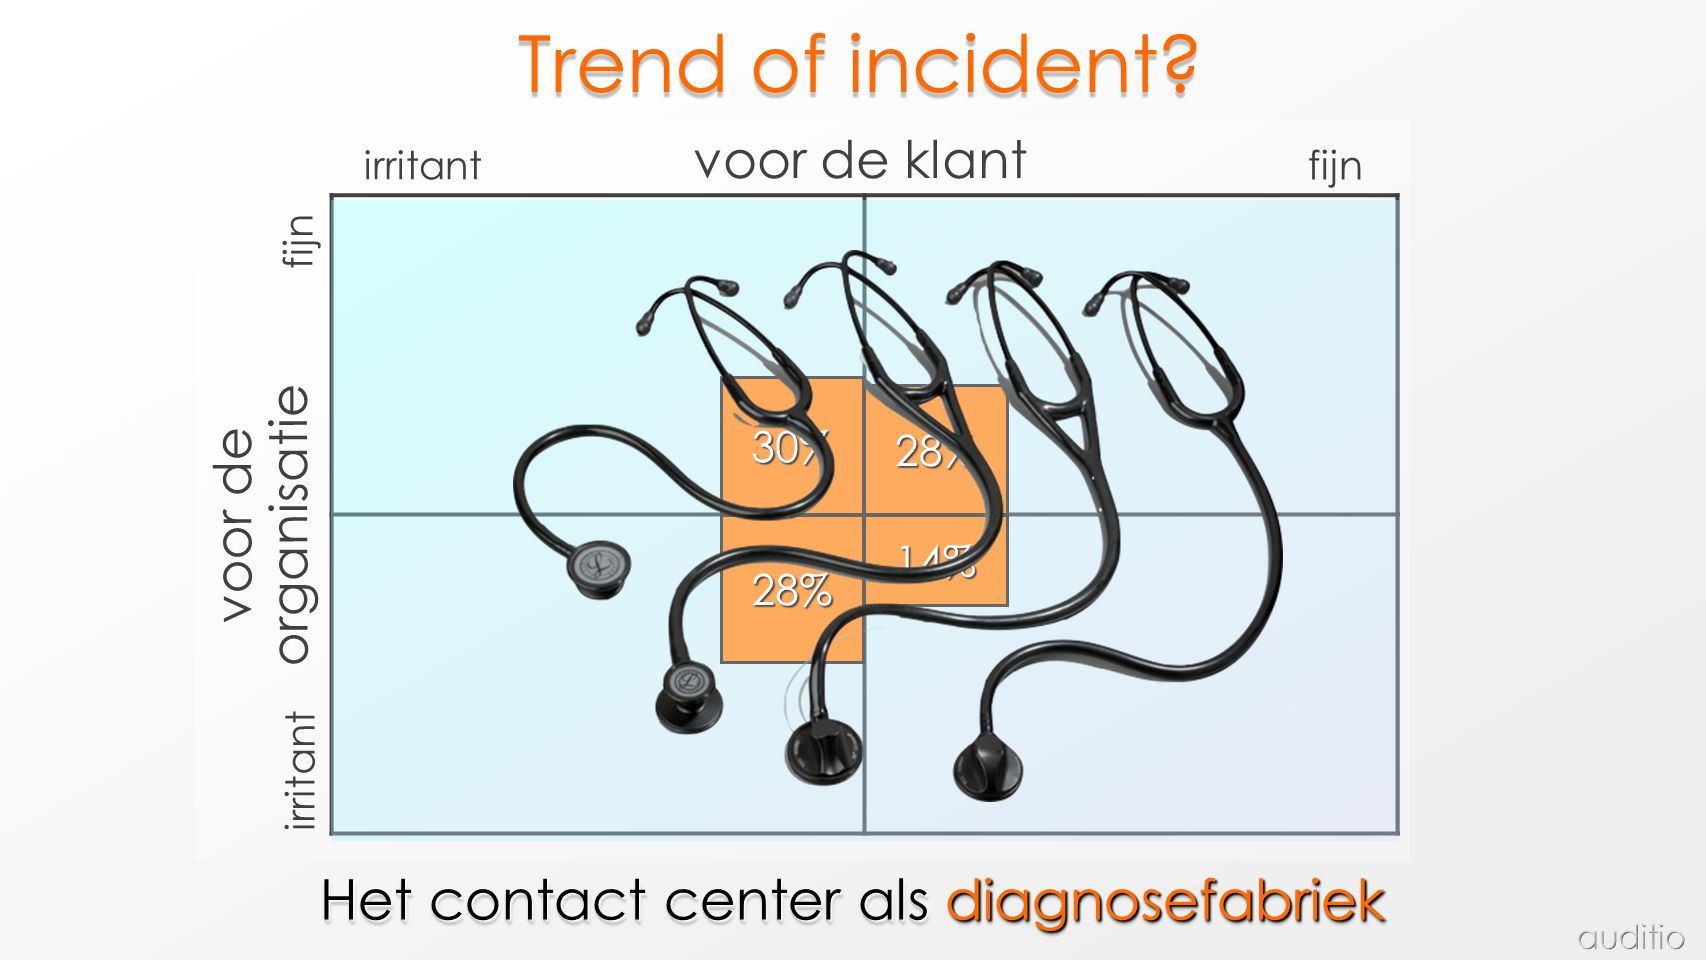 Het contact center als diagnosefabriek